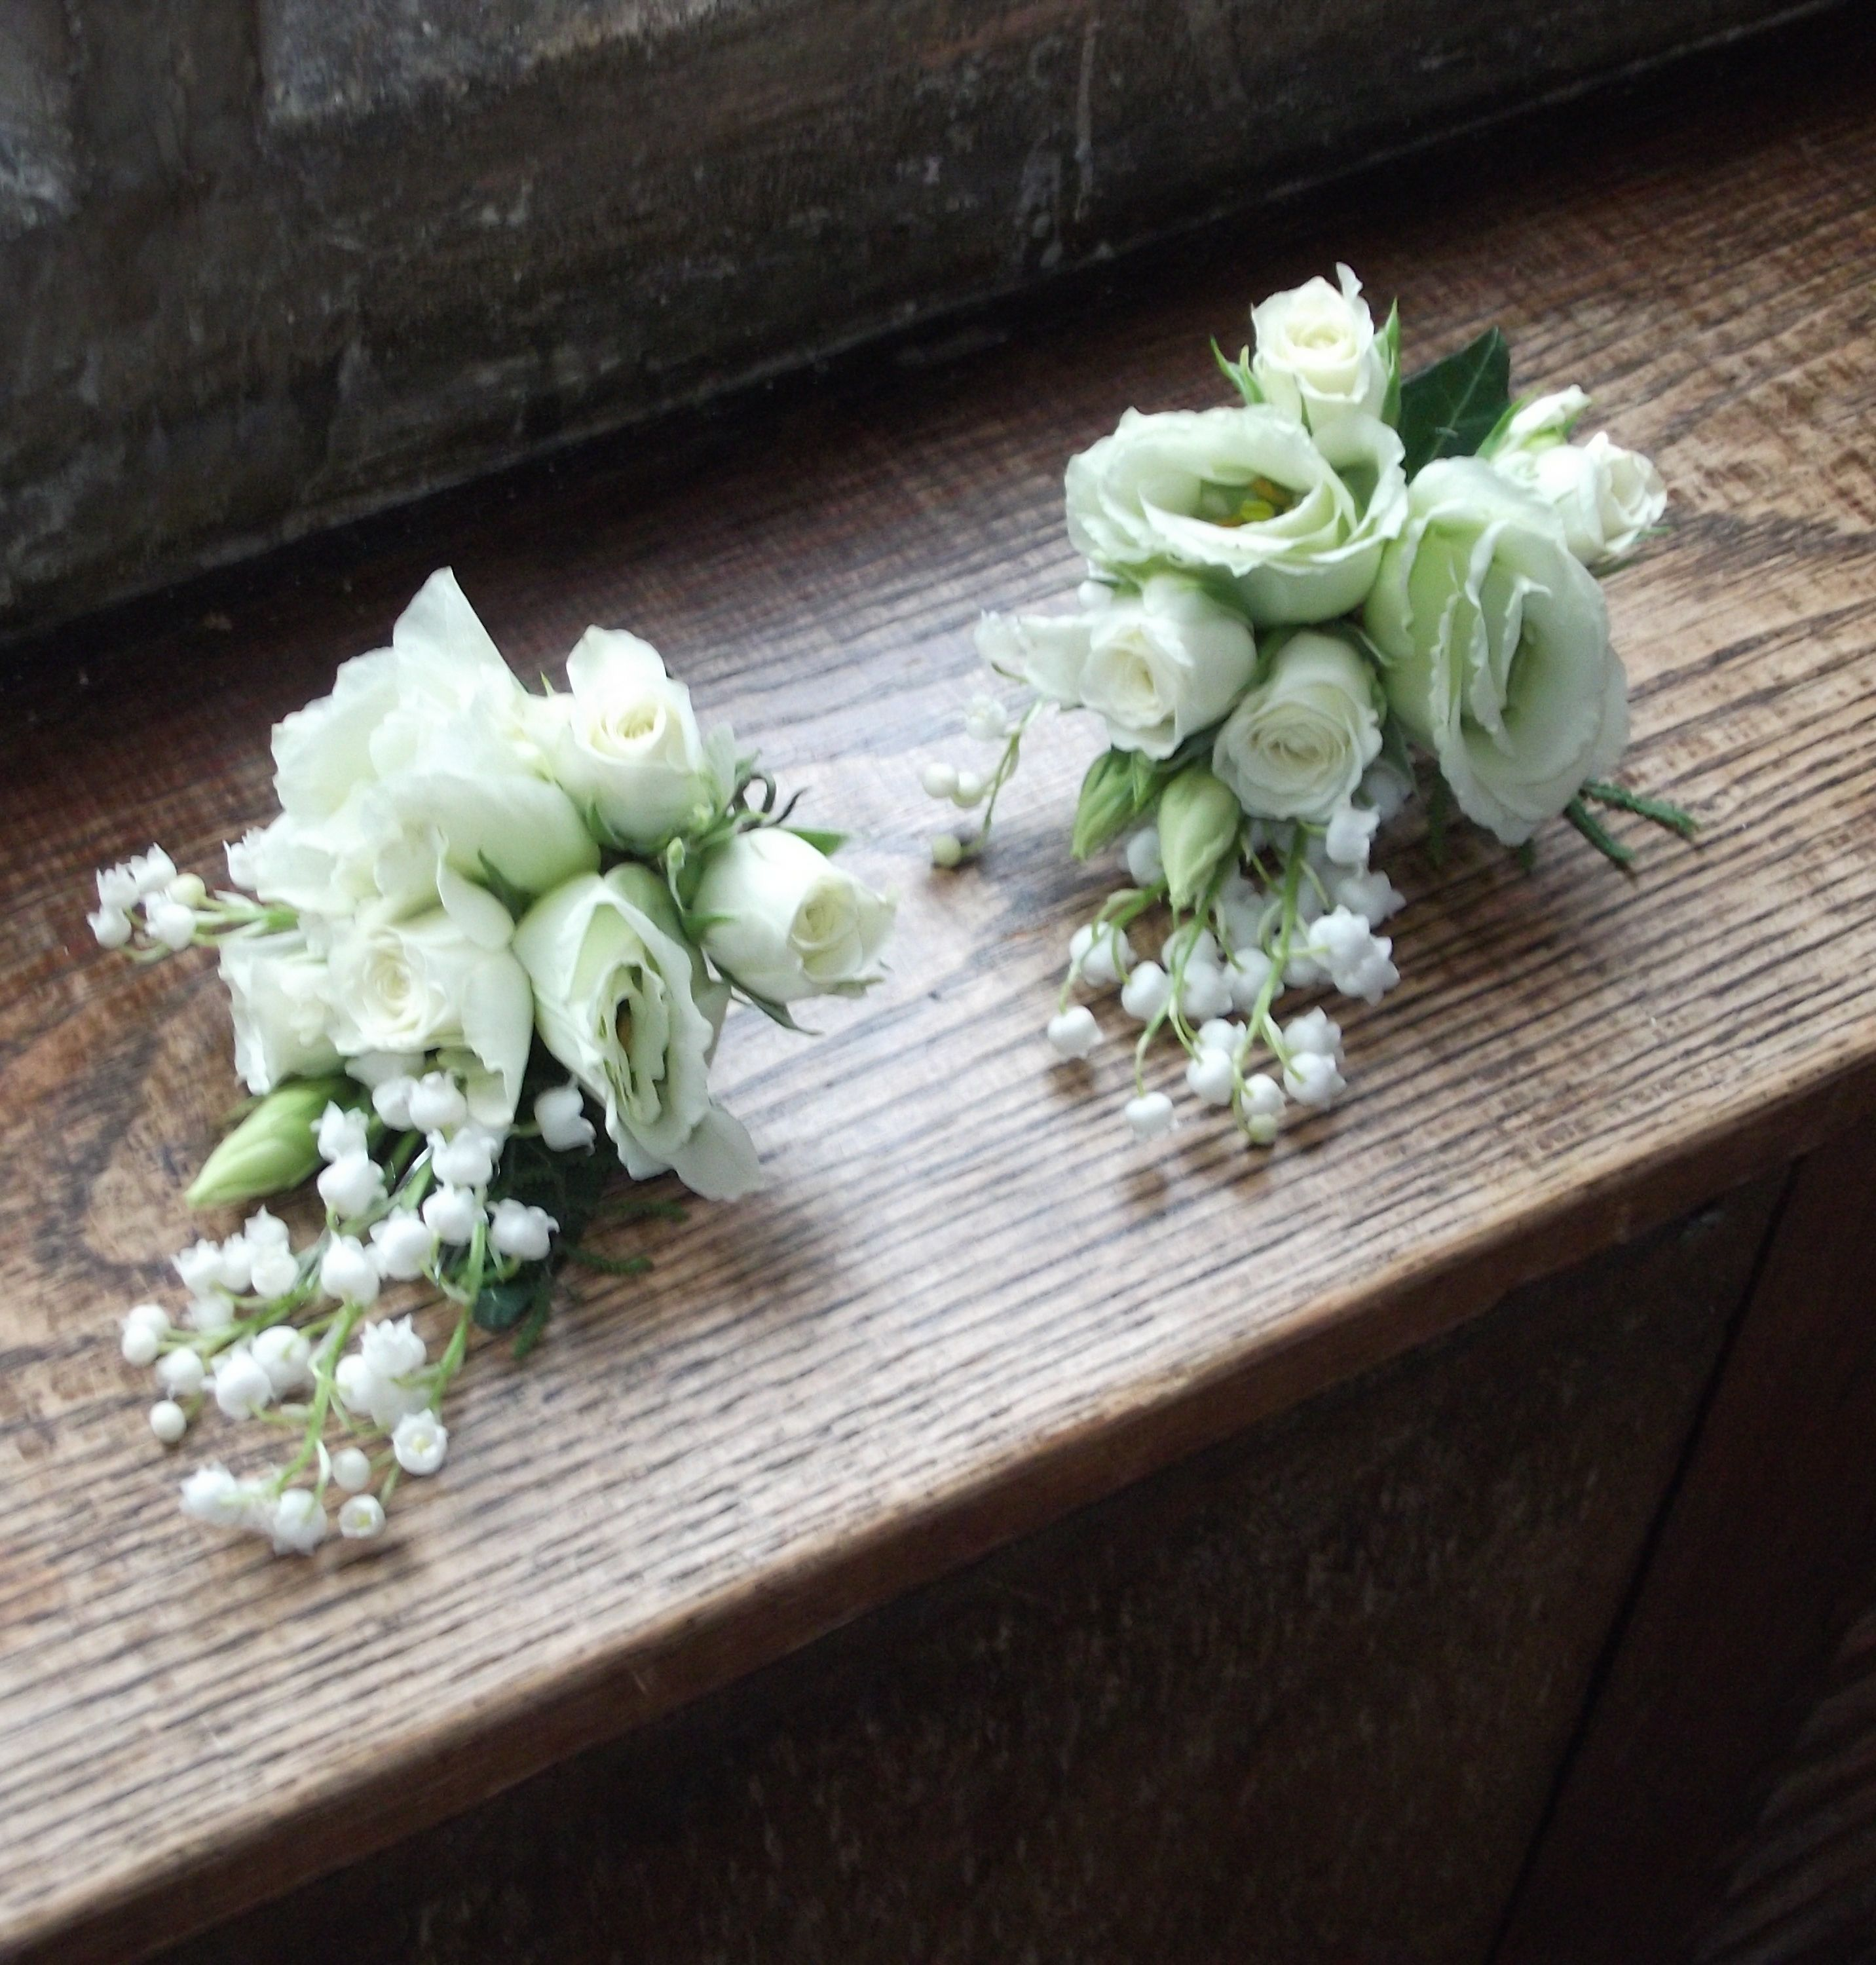 Mums Ivory Lapel Corsages With Lilly Of The Valley Spray Roses And Lisianthus For